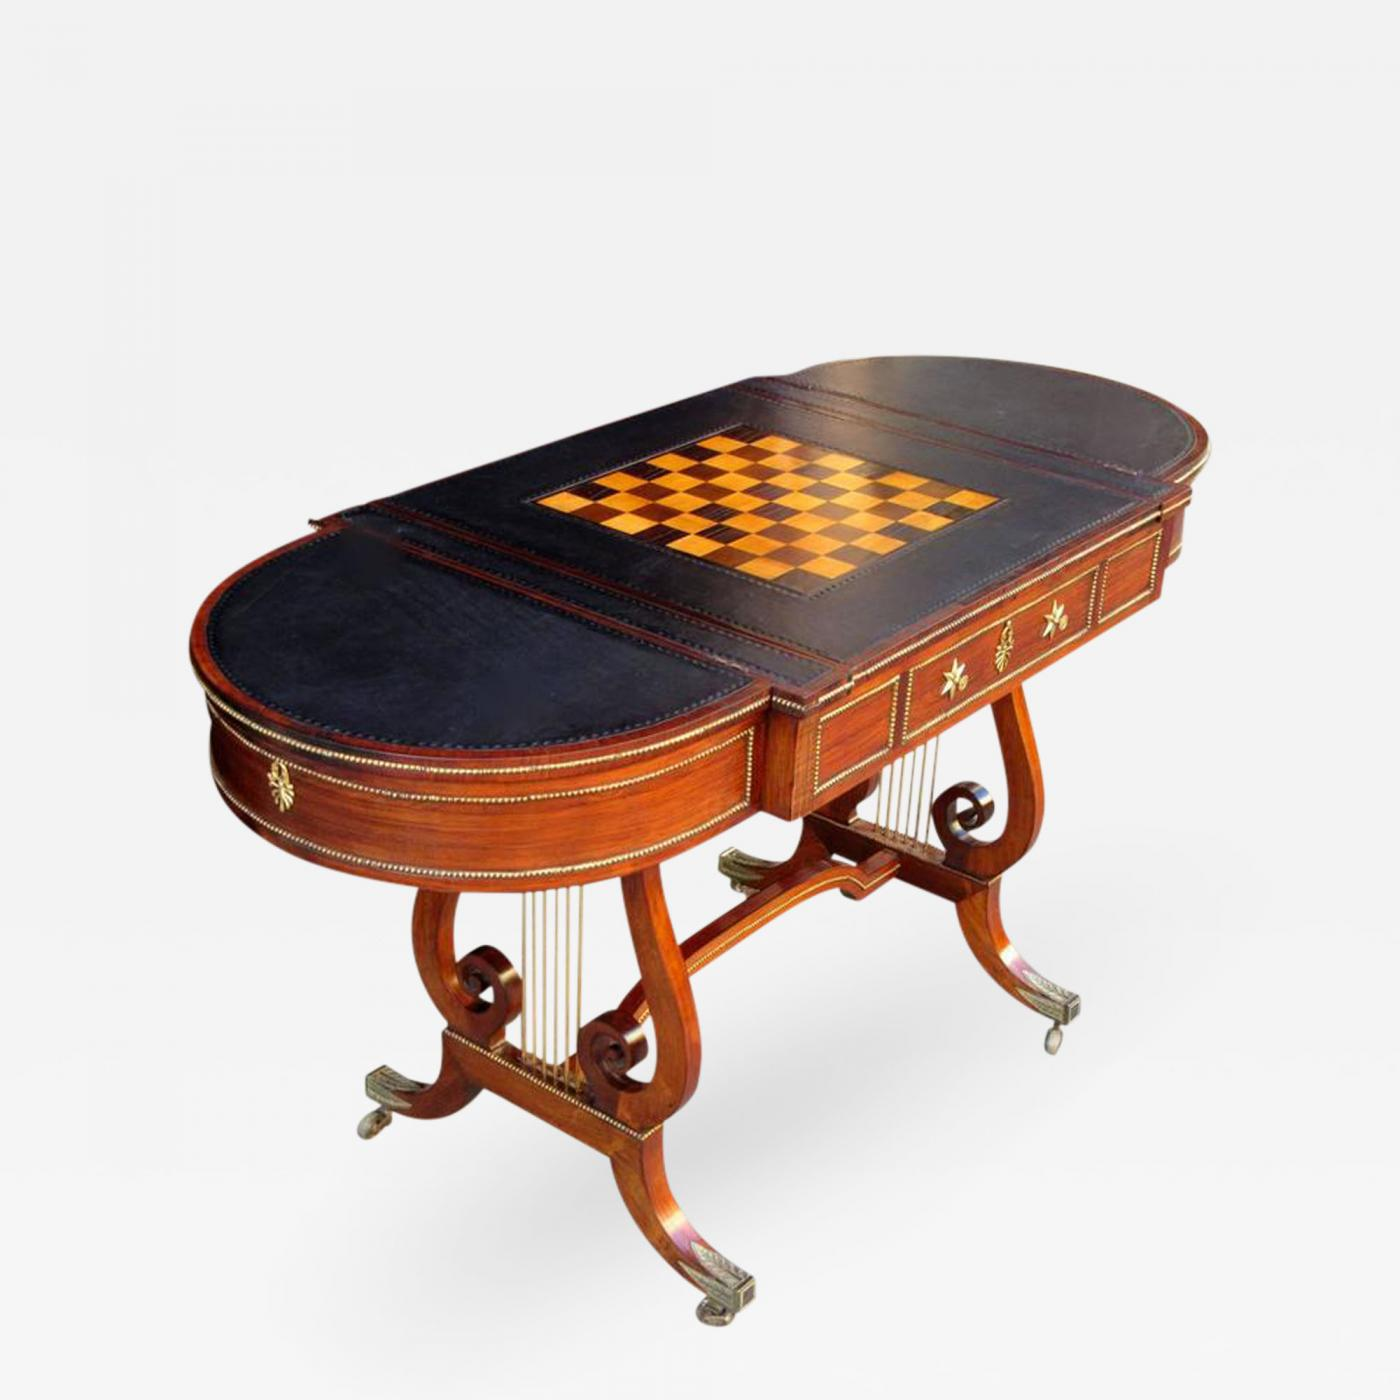 Gillows of lancaster london 19th c english regency mahogany listings furniture tables game tables geotapseo Gallery